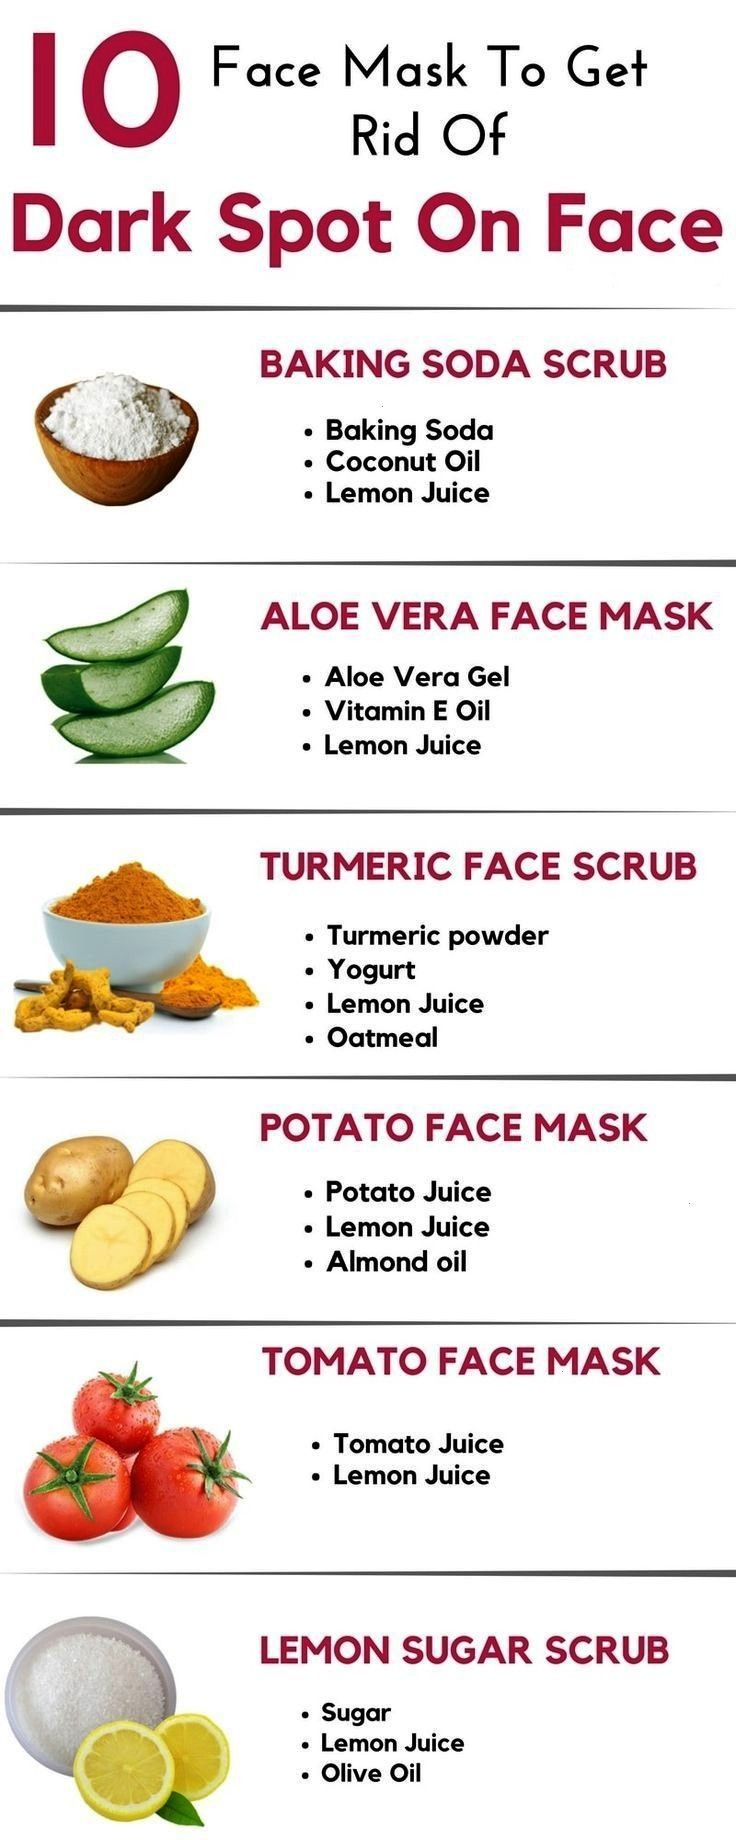 Healthyskin Permanently Treatments Naturally Remedies Natural Remove Beauty Hacks Marks Holes Clear S In 2020 Dark Spots On Face Spots On Face Face Baking